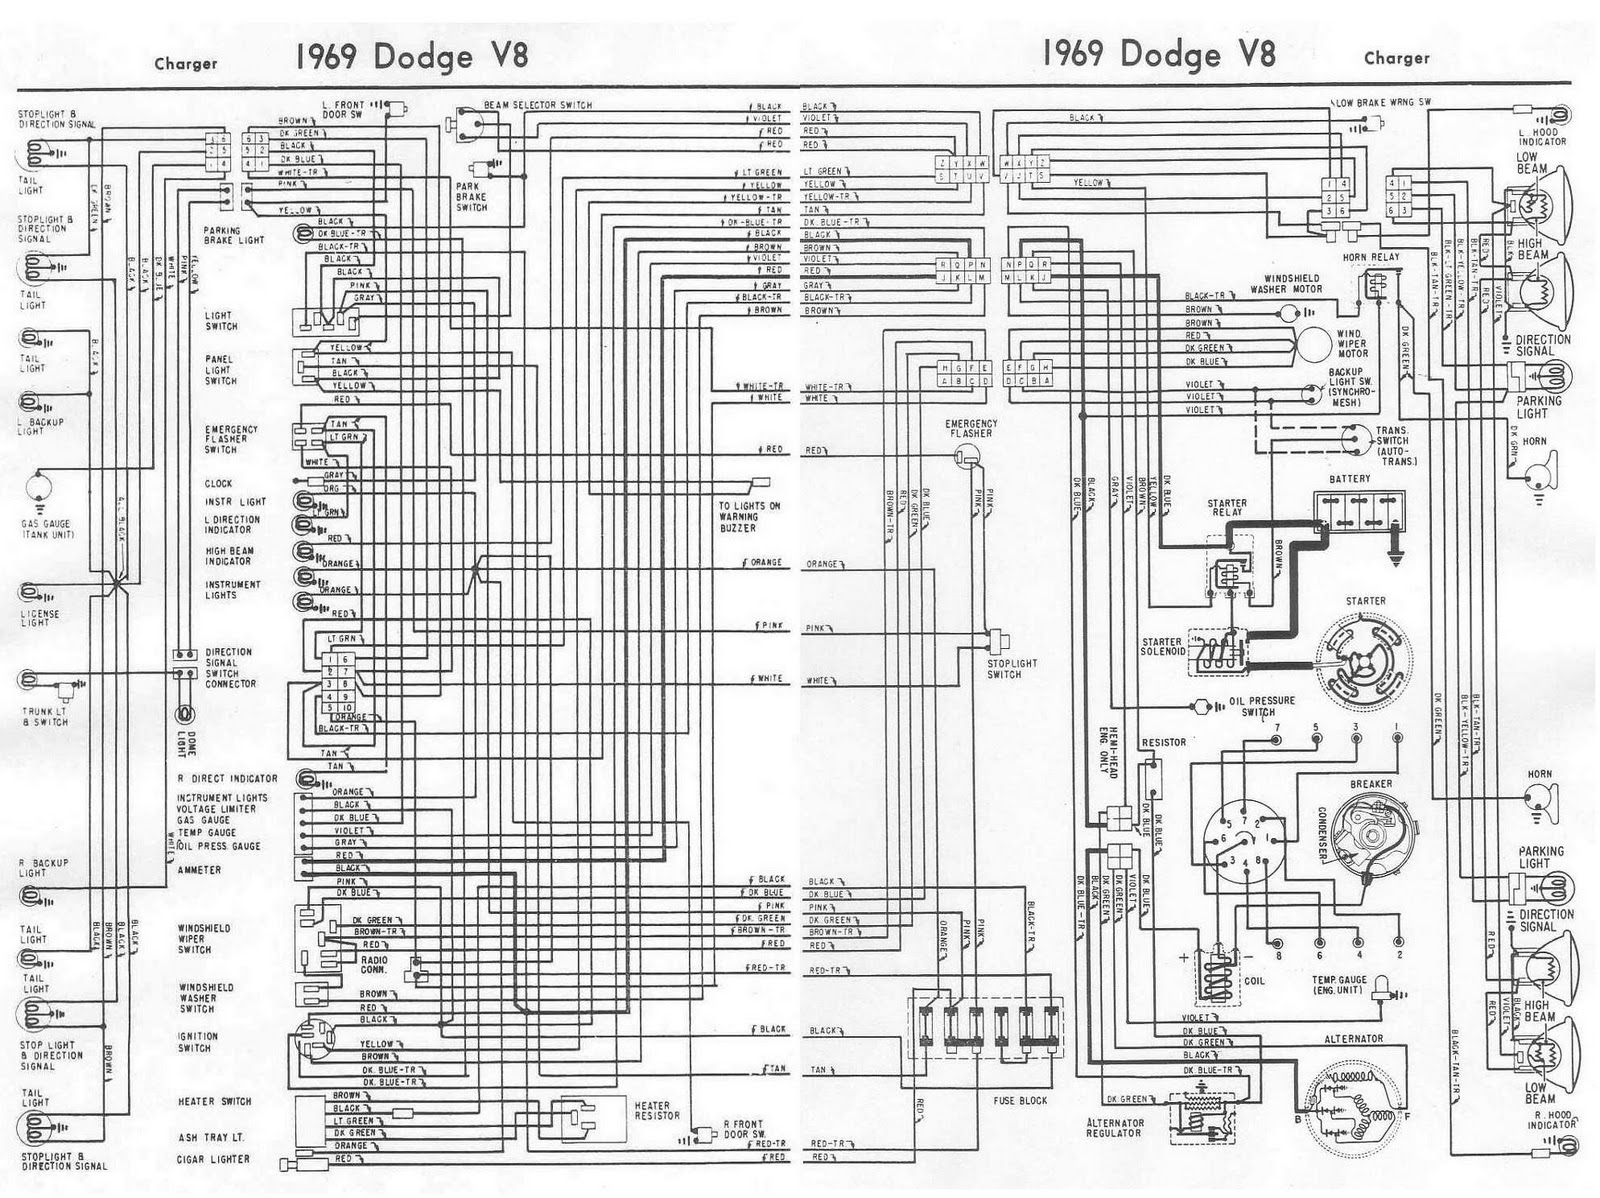 1970 dodge challenger rallye dash color wiring diagram somurich com r pod 179 wiring-diagram 1970 dodge challenger rallye dash color wiring diagram lovely 1970 dodge challenger wiring diagram images